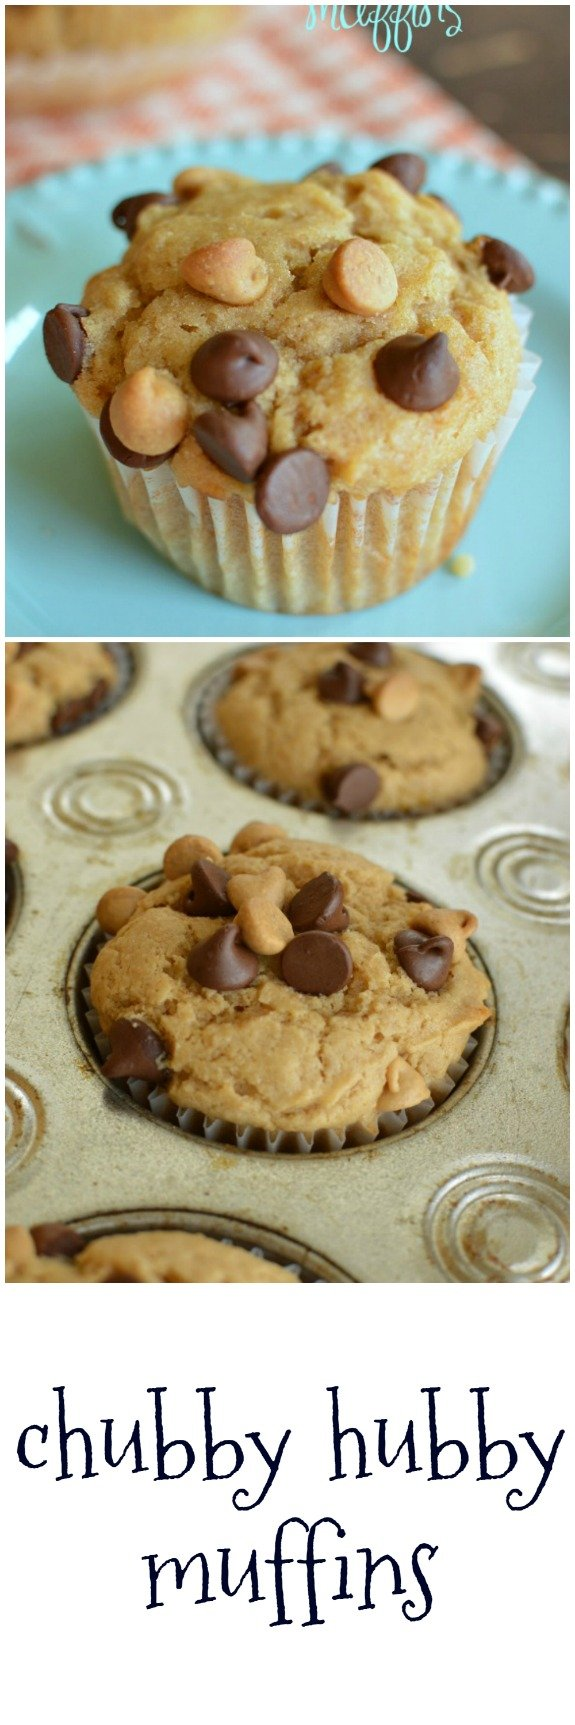 Chubby Hubby Muffins are for those days that need to begin with chocolate and peanut butter! Oh ya, the bananas make these muffins EXTRA moist! Little Dairy on the Prairie